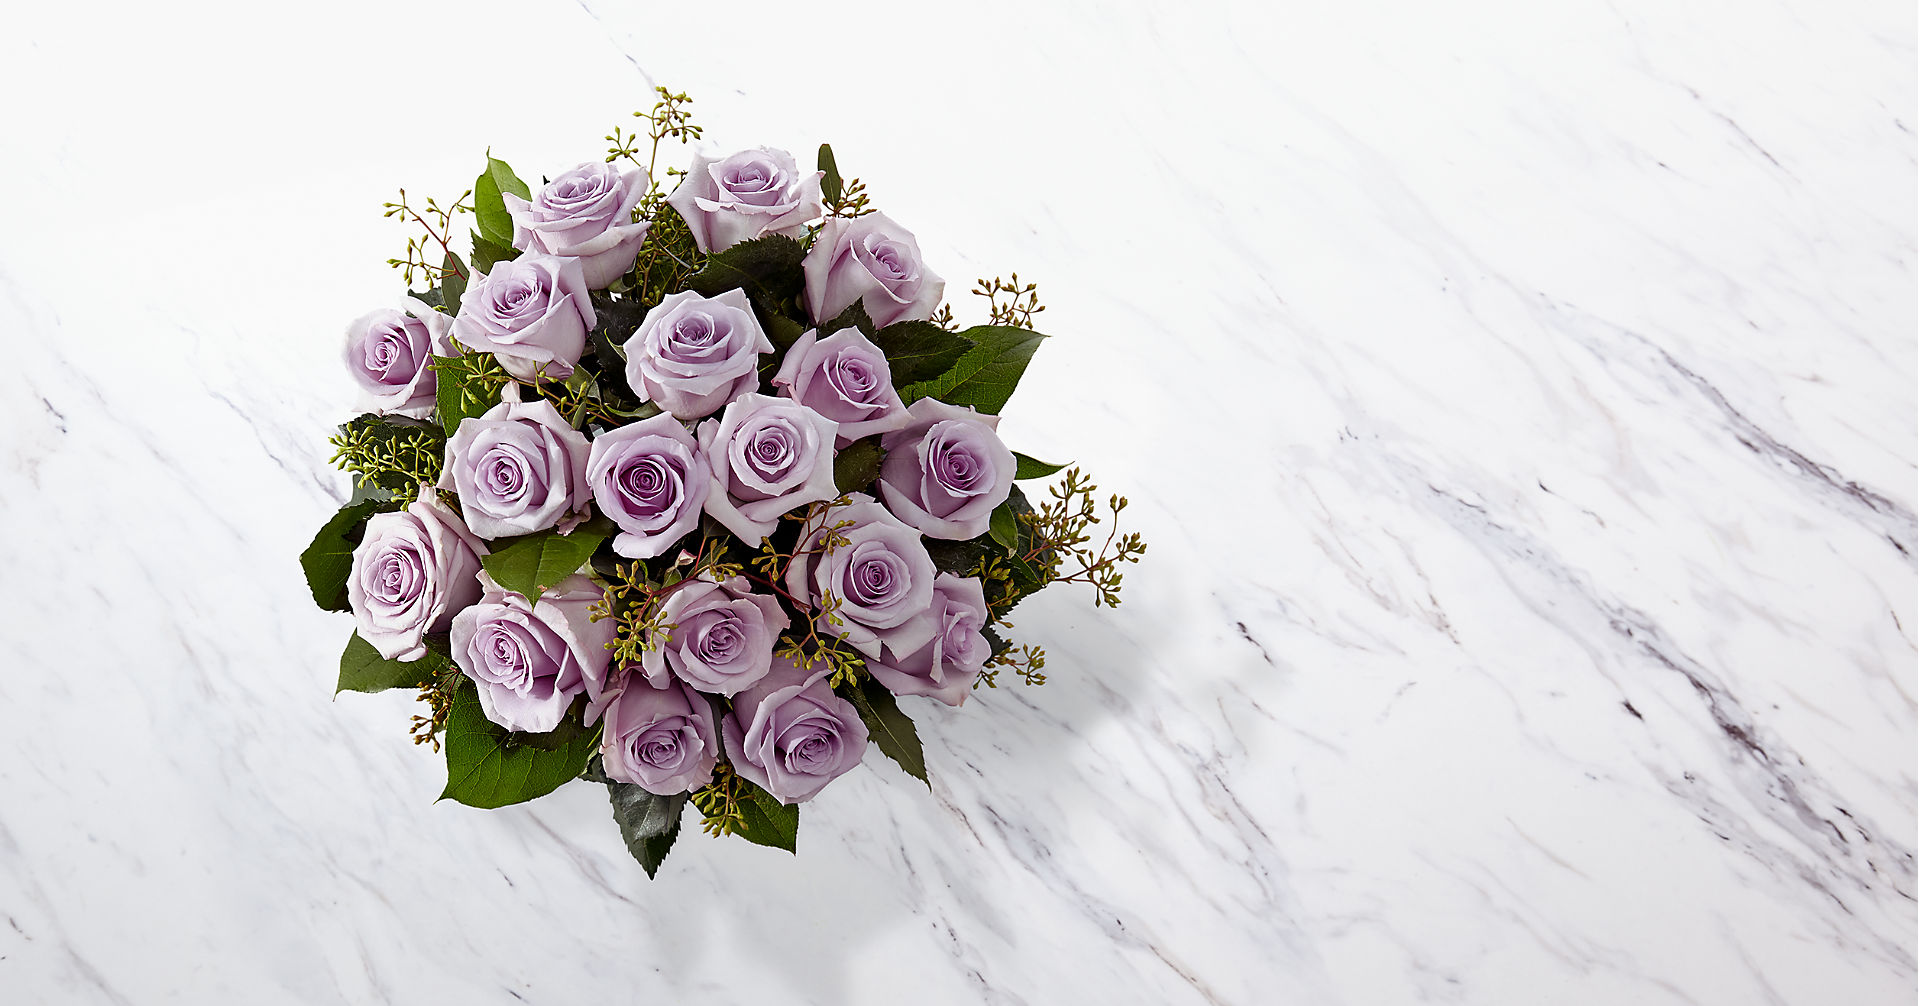 The Lavender Rose Bouquet - VASE INCLUDED - Image 2 Of 2